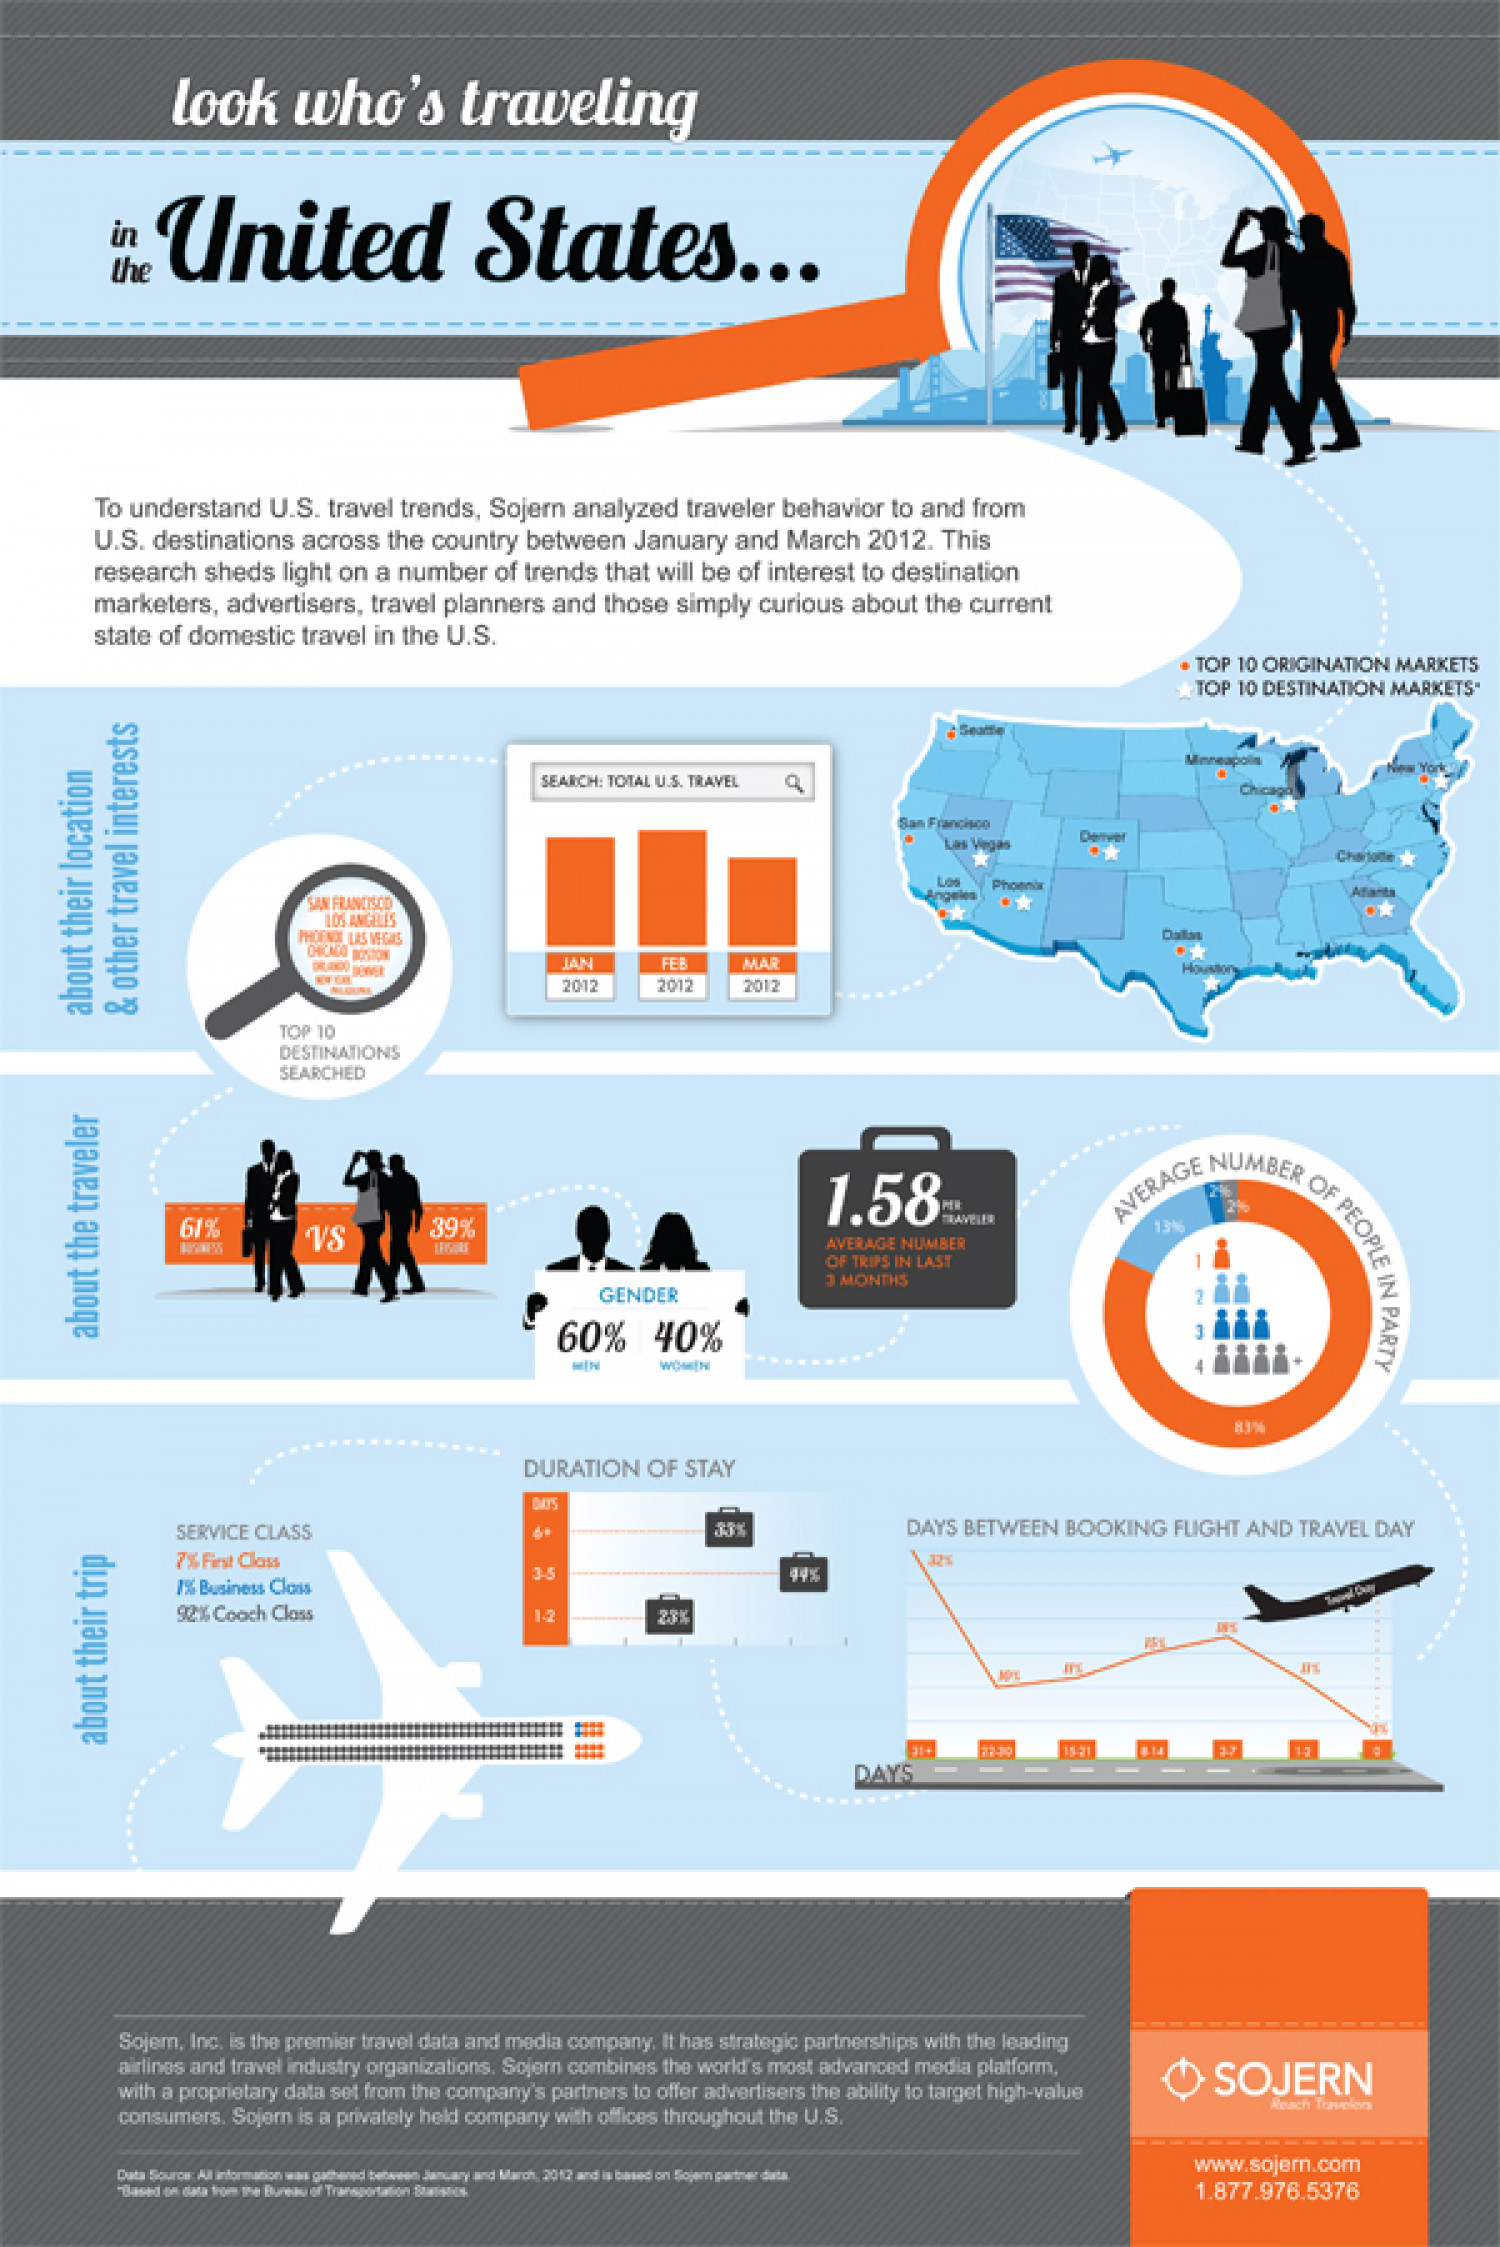 Look Who's Traveling in the United States... Infographic